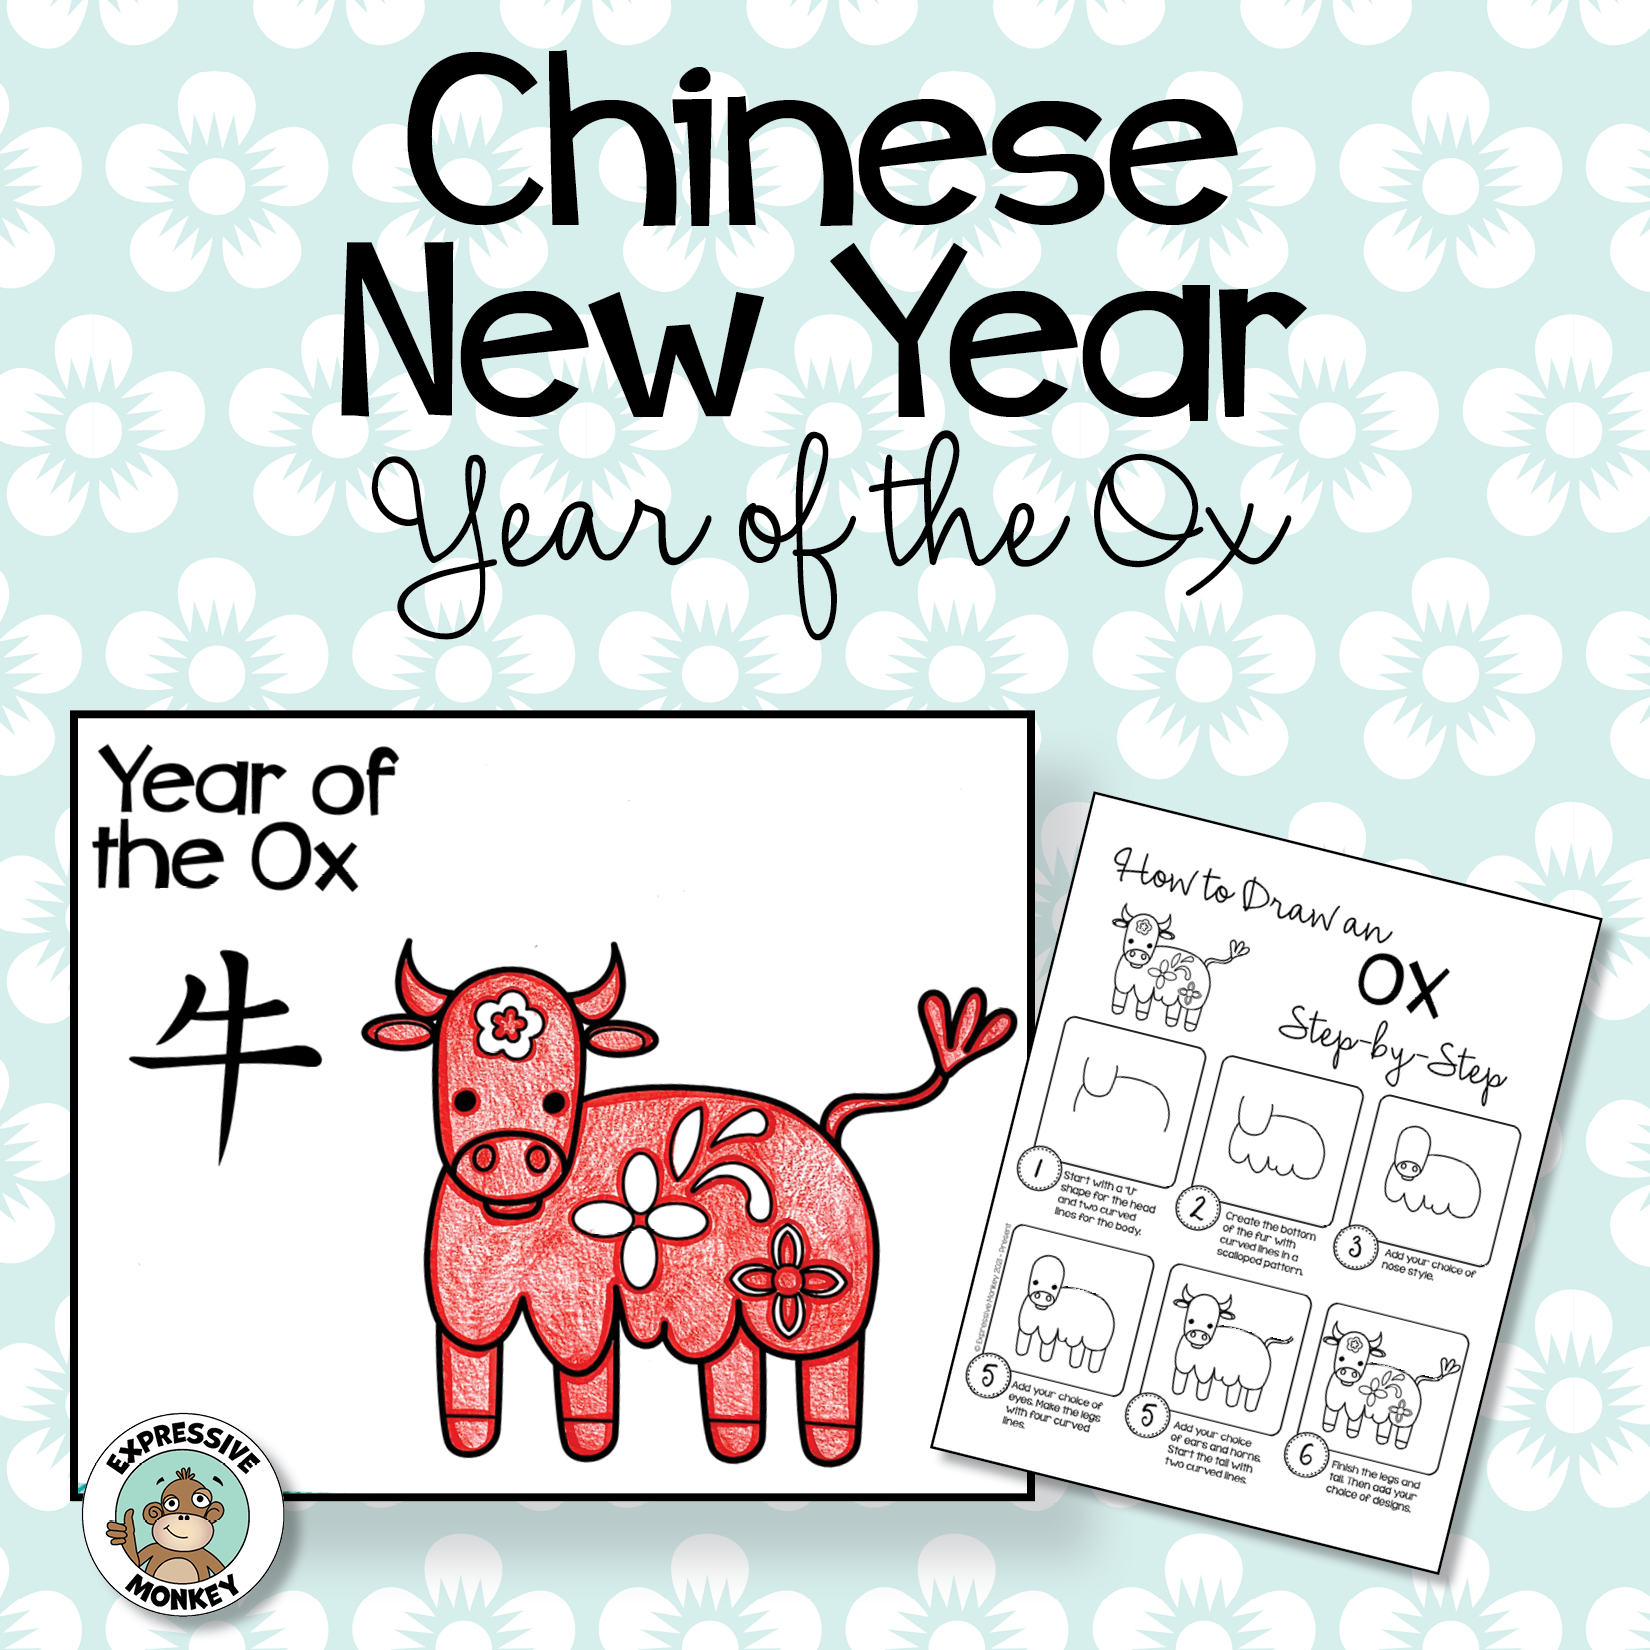 Chinese New Year Drawing: Year of the Ox Art Activity